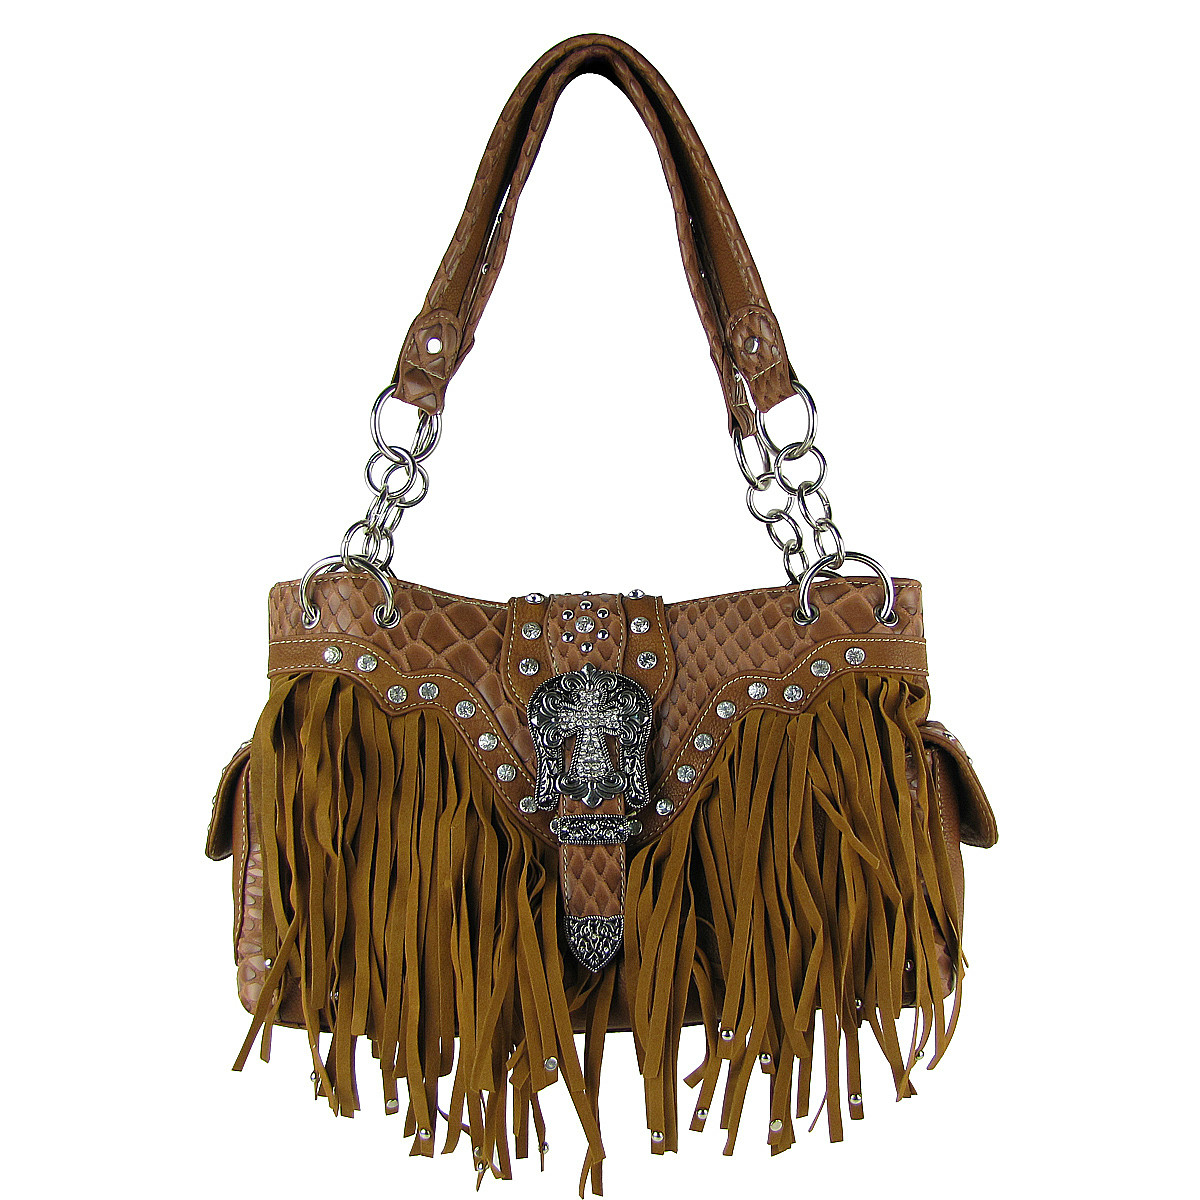 BROWN RHINESTONE BUCKLE CROSS FRINGE SHOULDER HANDBAG HB1-HL12164-1BRN